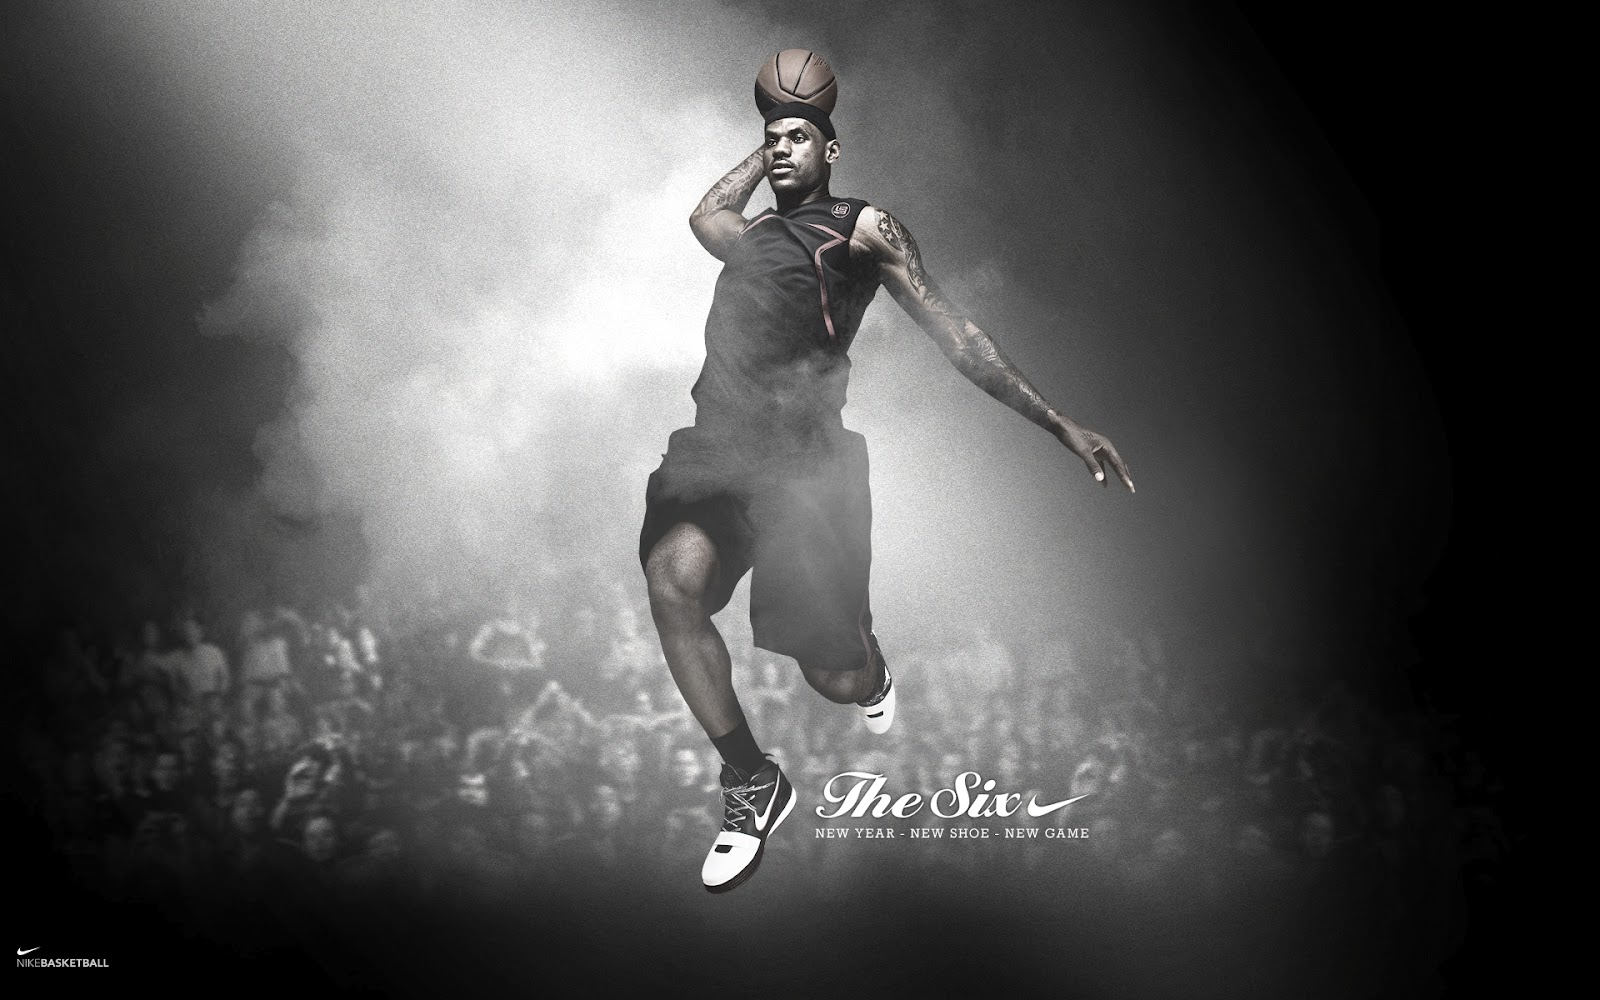 http://2.bp.blogspot.com/-r-HgyhMkEOg/T-127YdJSYI/AAAAAAAACYY/bkrJdRmnt74/s1600/Flying_Lebron_James_Nike_Basketball_Ads_HD_Desktop_Wallpaper-HidefWall.Blogspot.Com.jpg